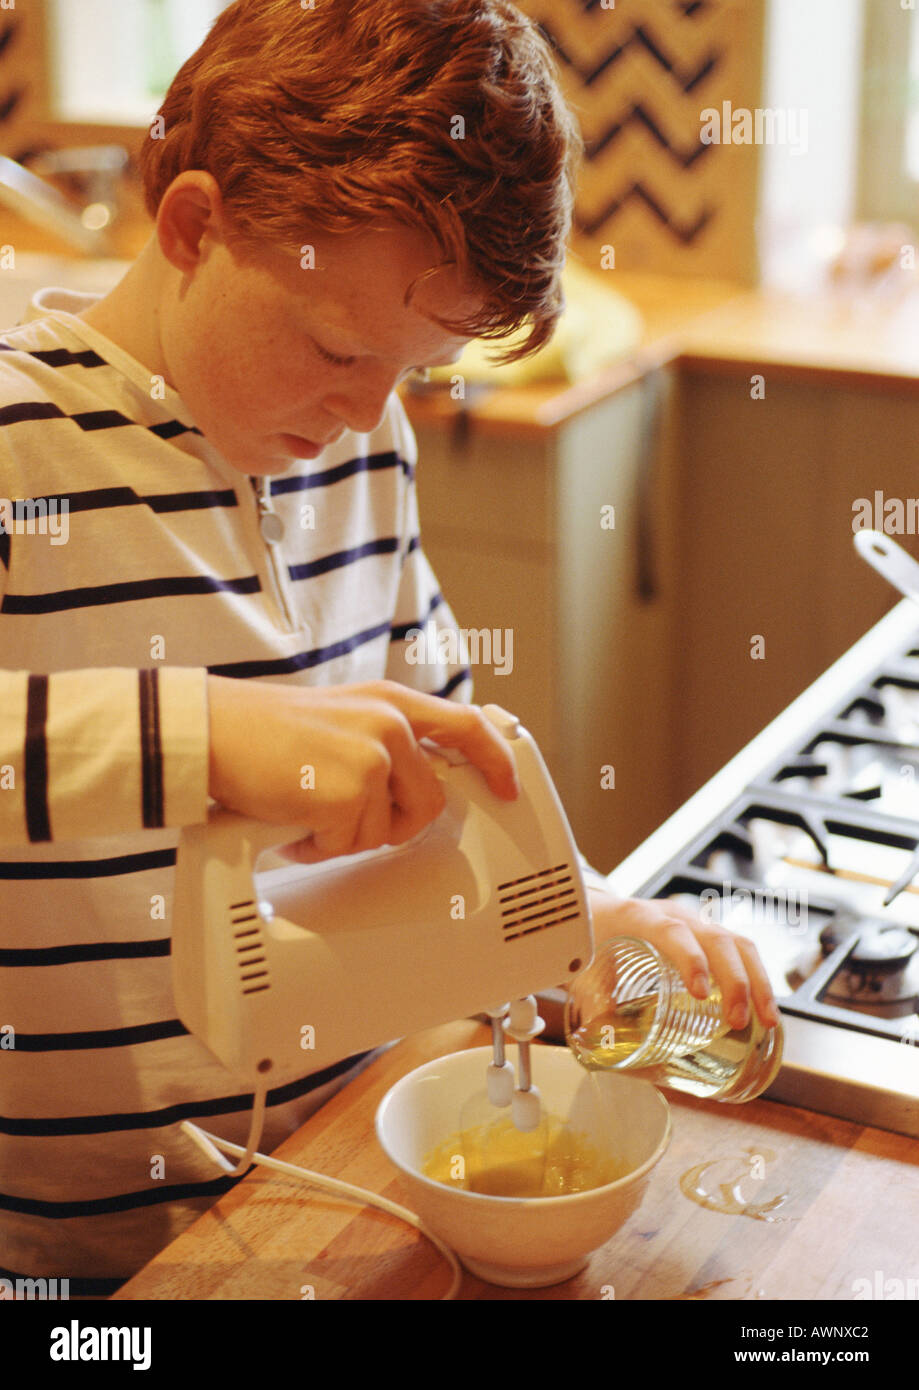 Child using electric mixer - Stock Image